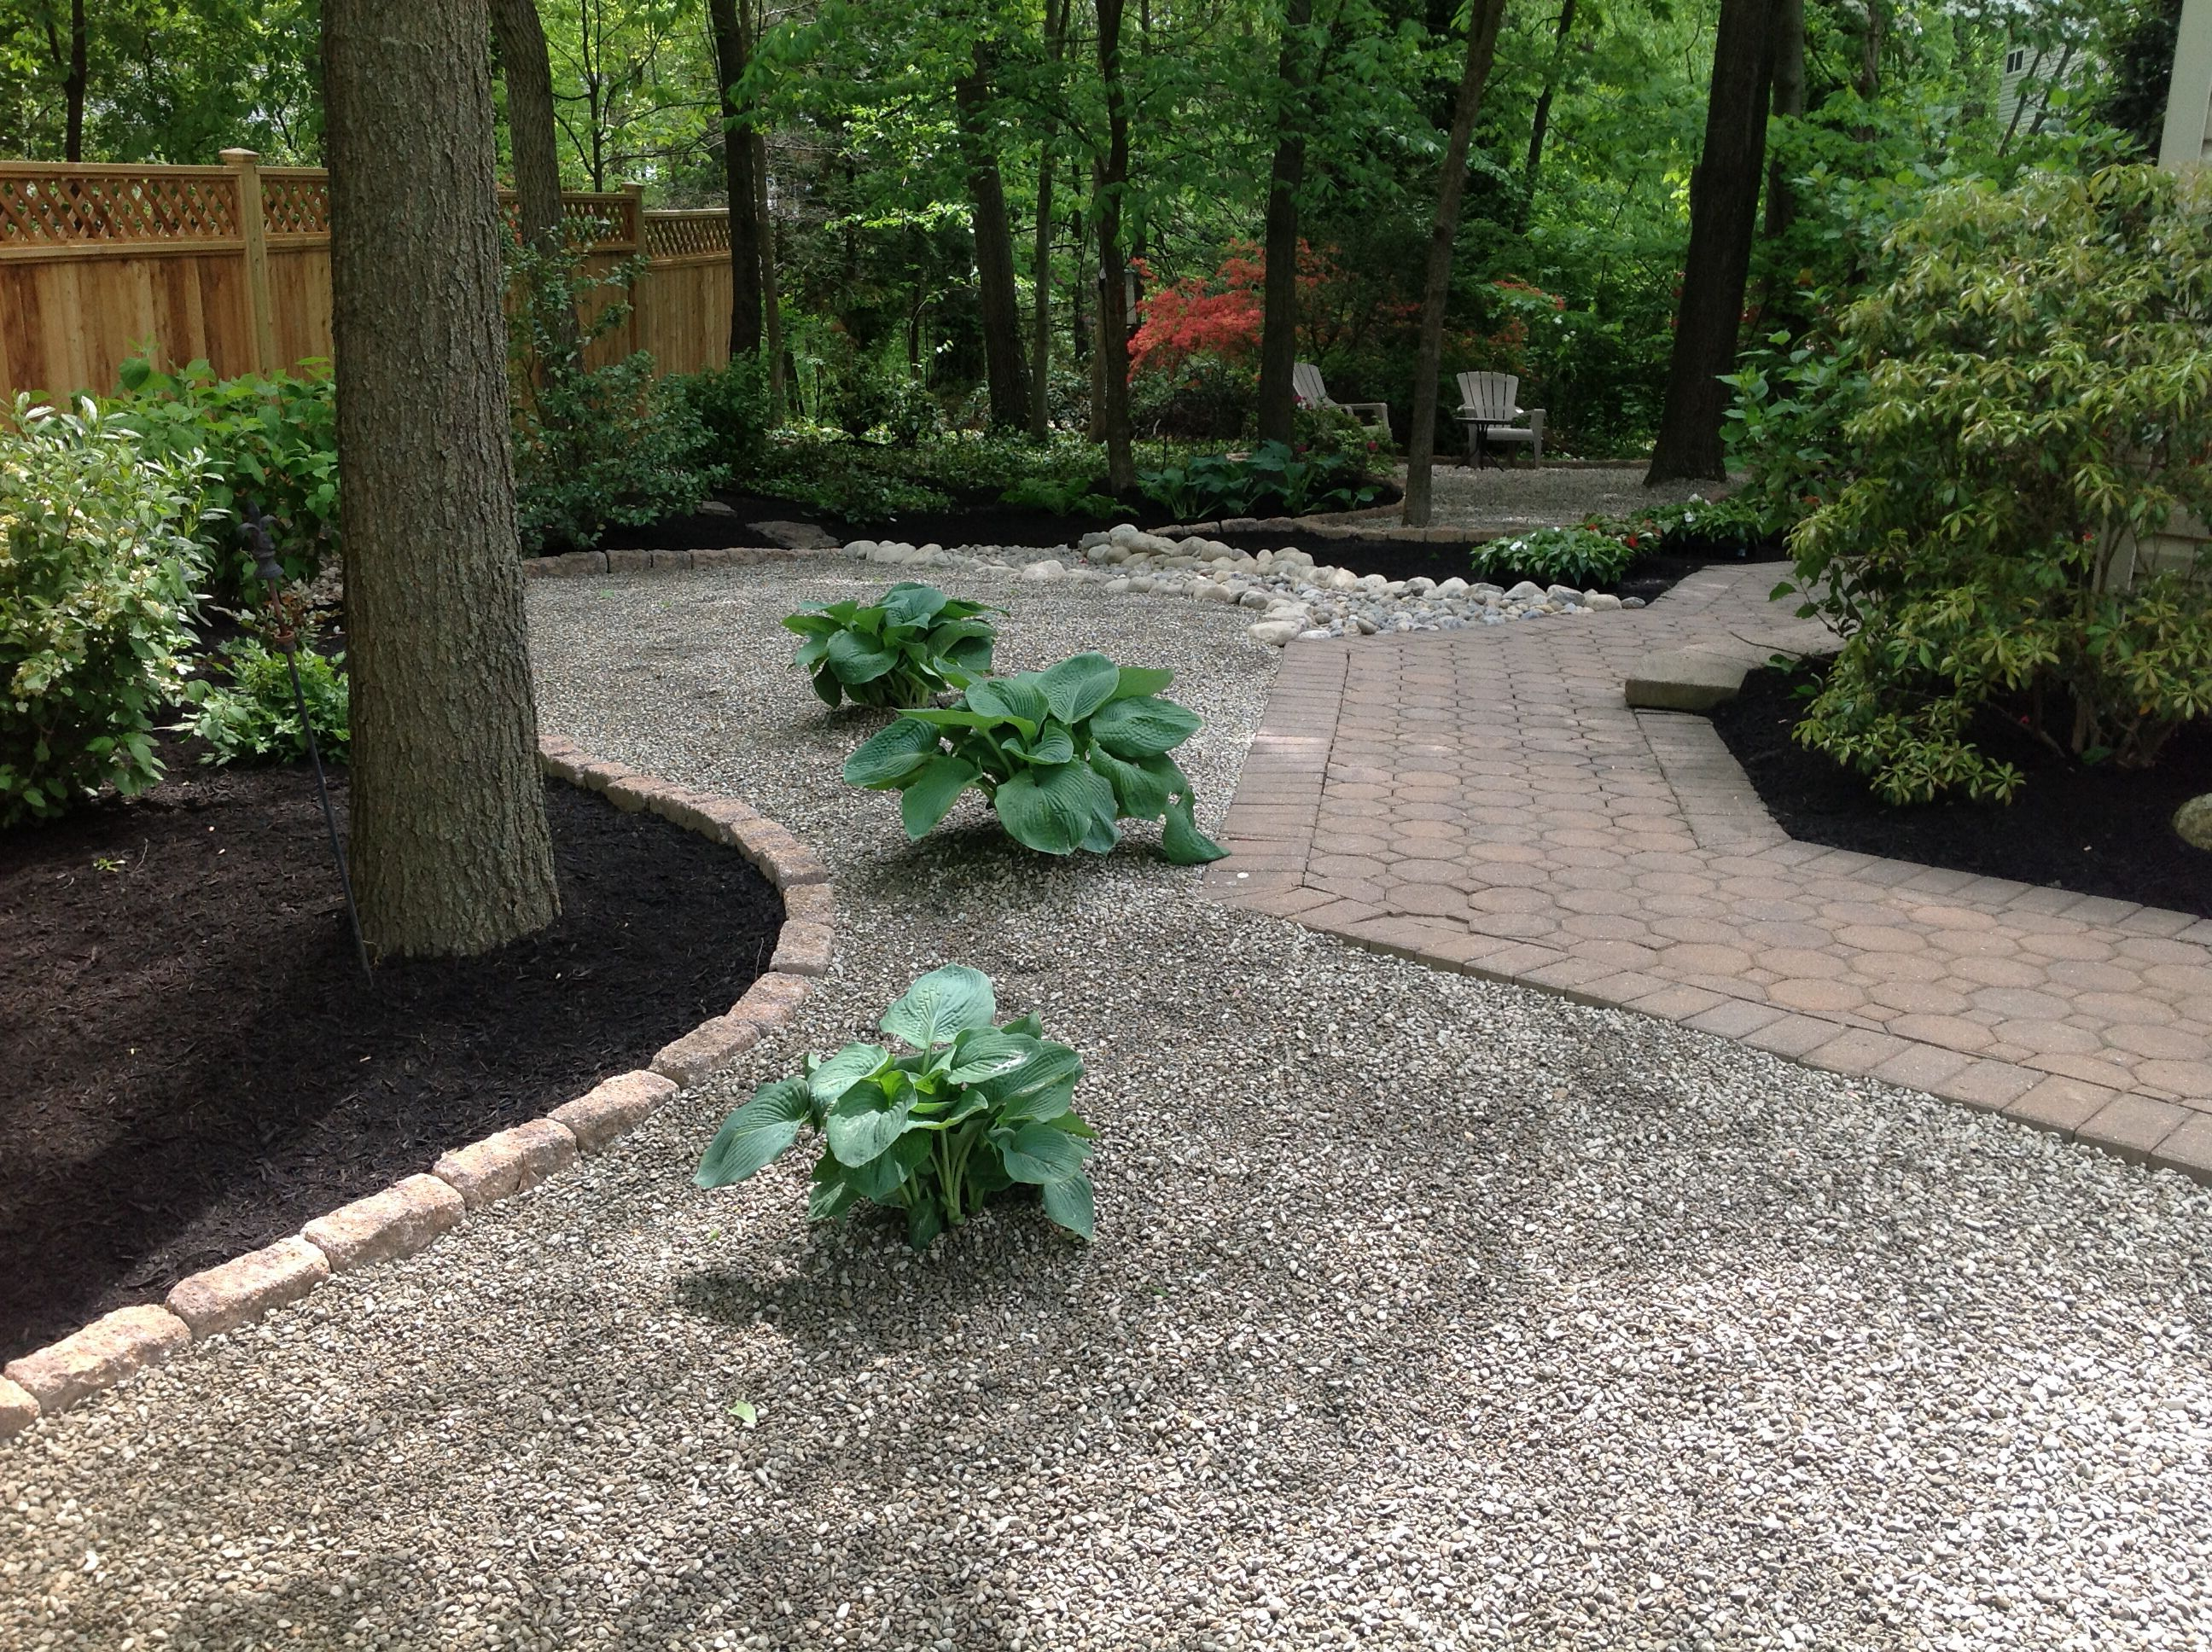 Pea gravel and perennials for our shady backyard | K & K ... on Pea Gravel Yard Ideas id=65941